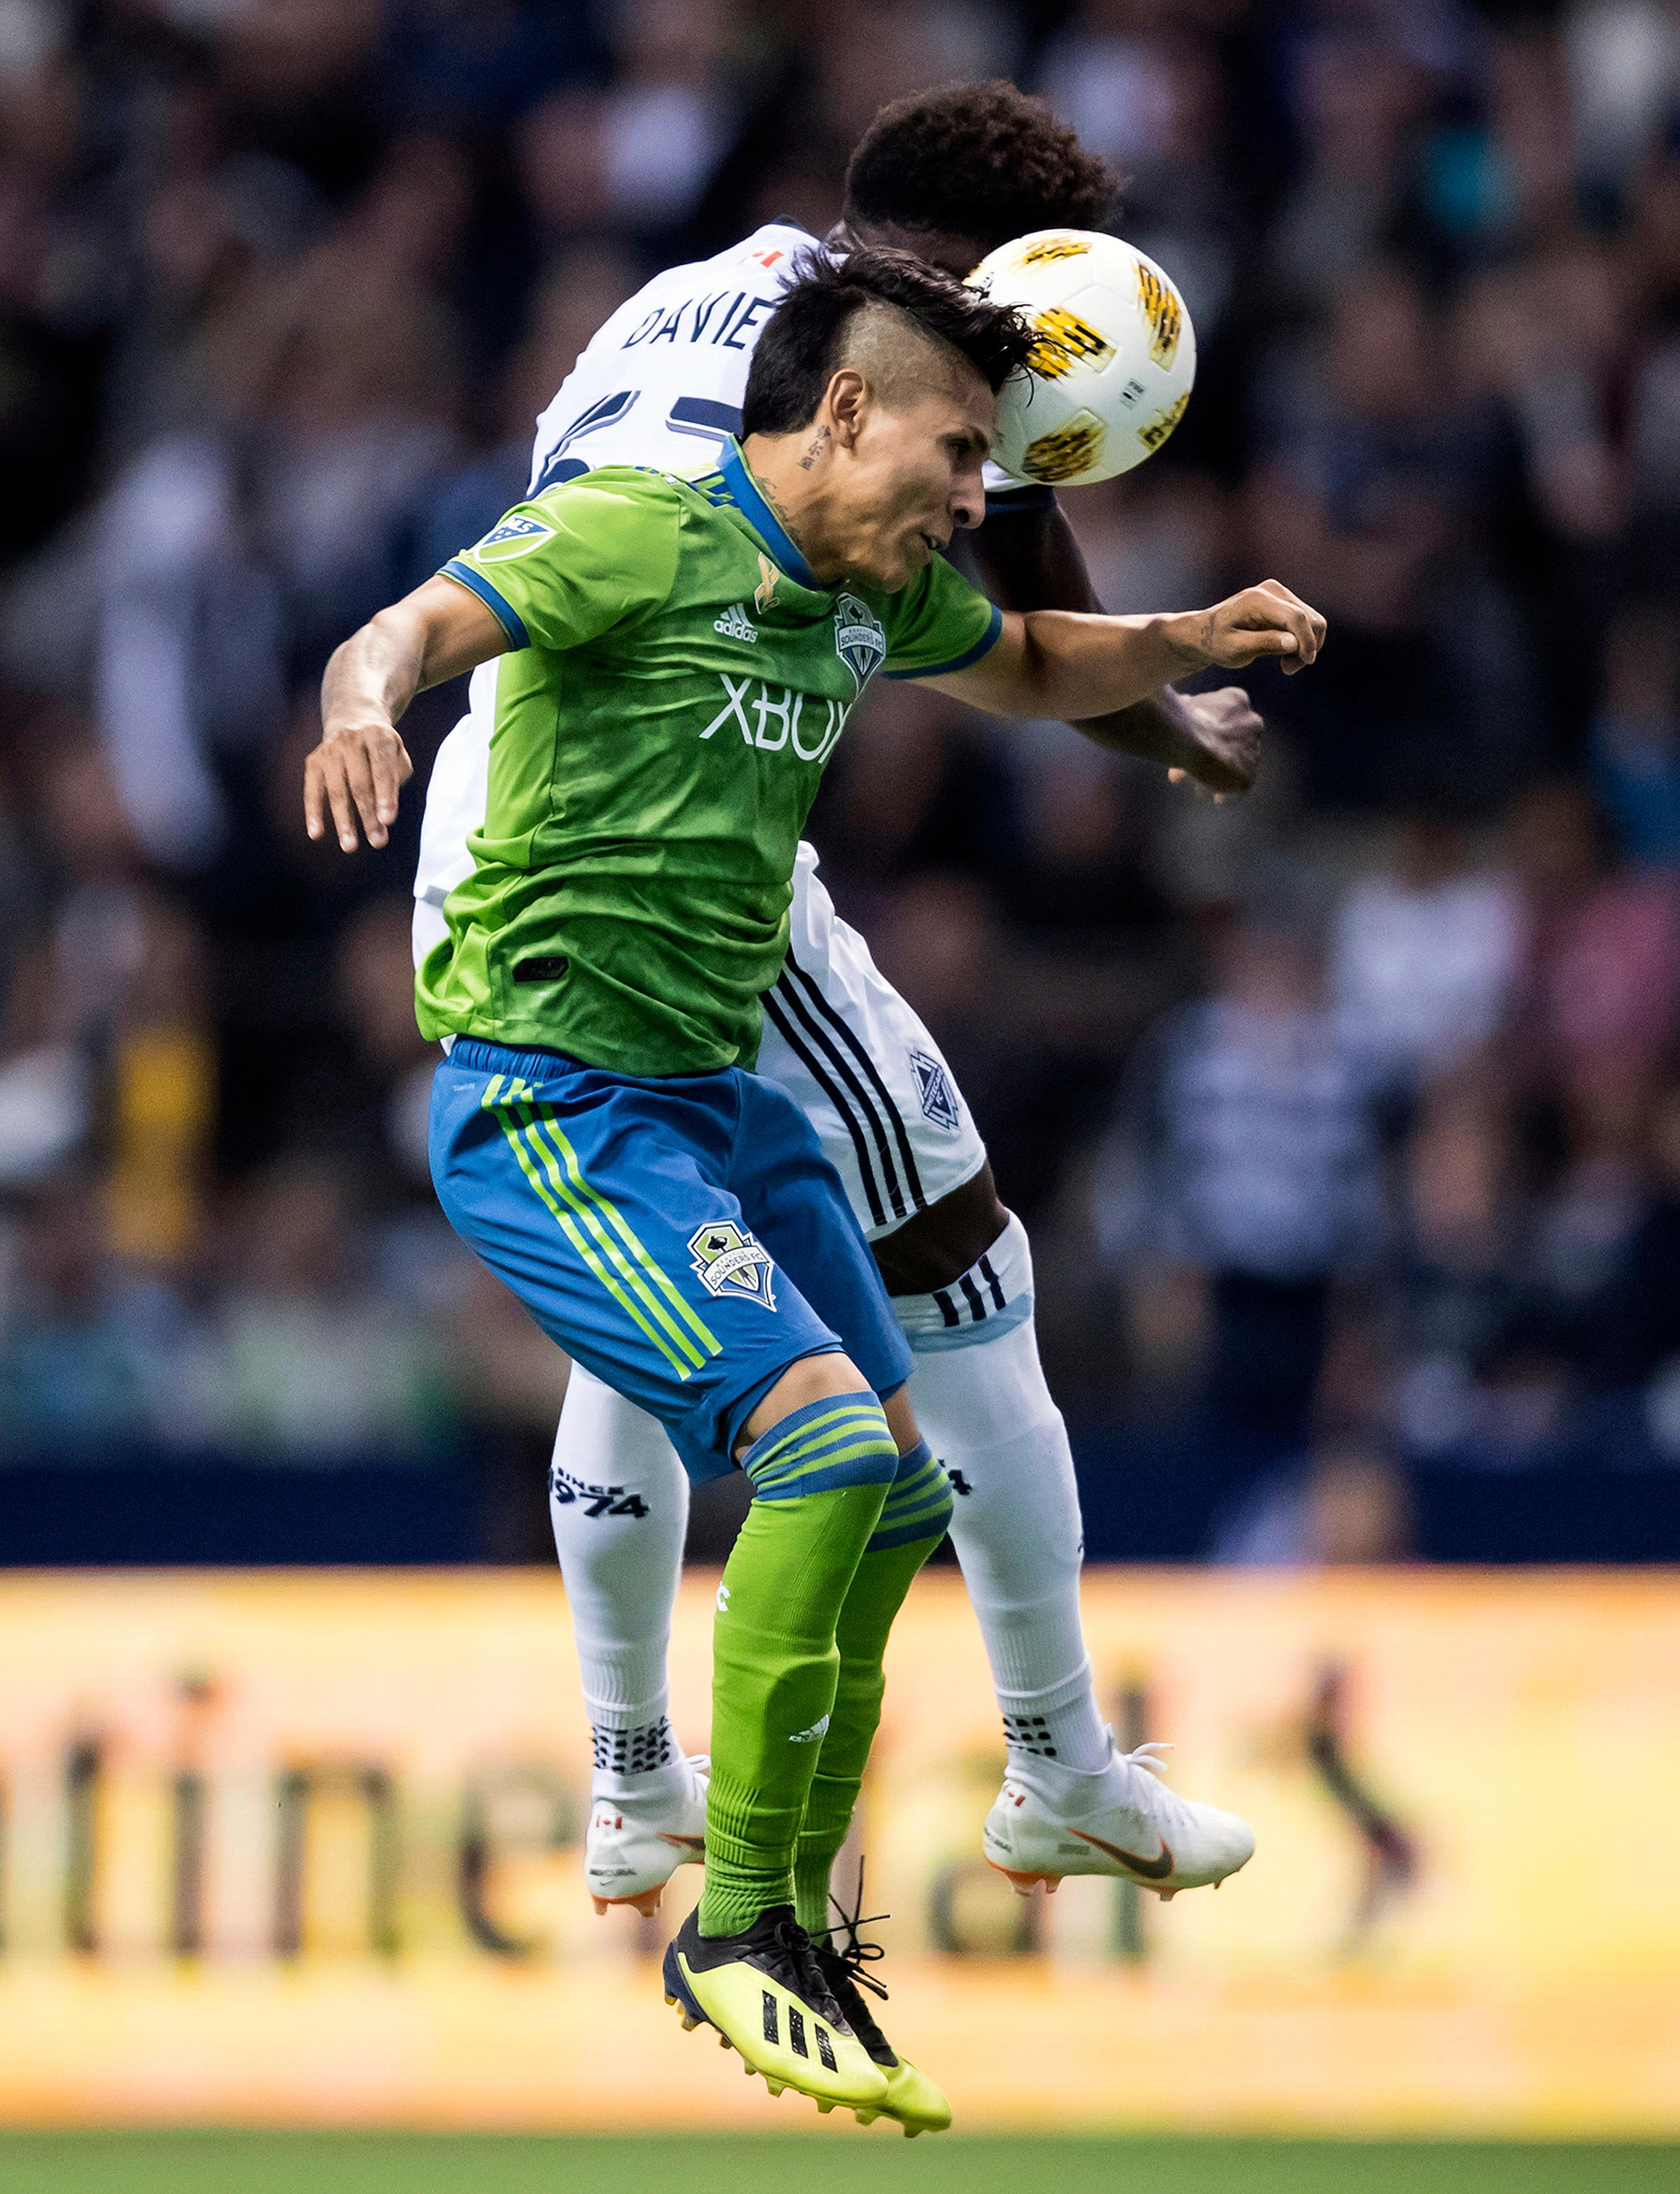 Seattle Sounders' Raul Ruidiaz, front, and Vancouver Whitecaps' Alphonso Davies vie for the ball during the first half of an MLS soccer match, Saturday, Sept. 15, 2018, in Vancouver, British Columbia. (Darryl Dyck/The Canadian Press via AP)